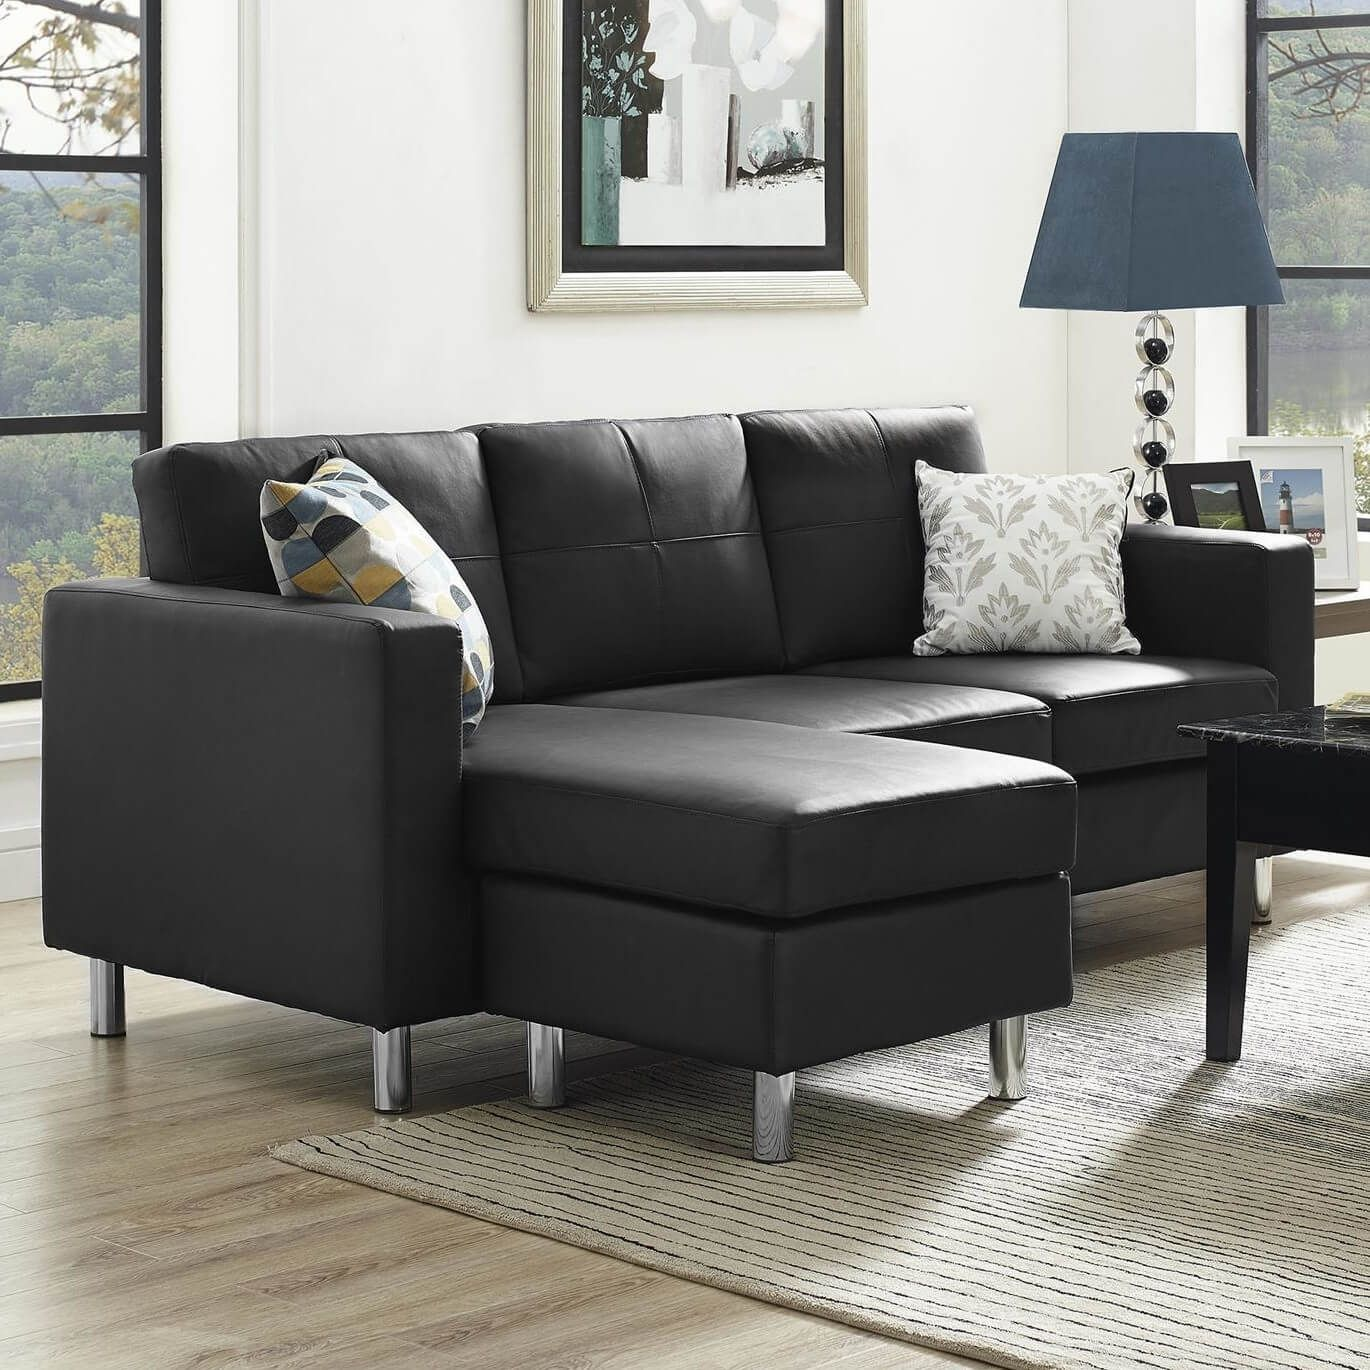 Sectional Sofas For Less Than 300 httpml2rcom Pinterest